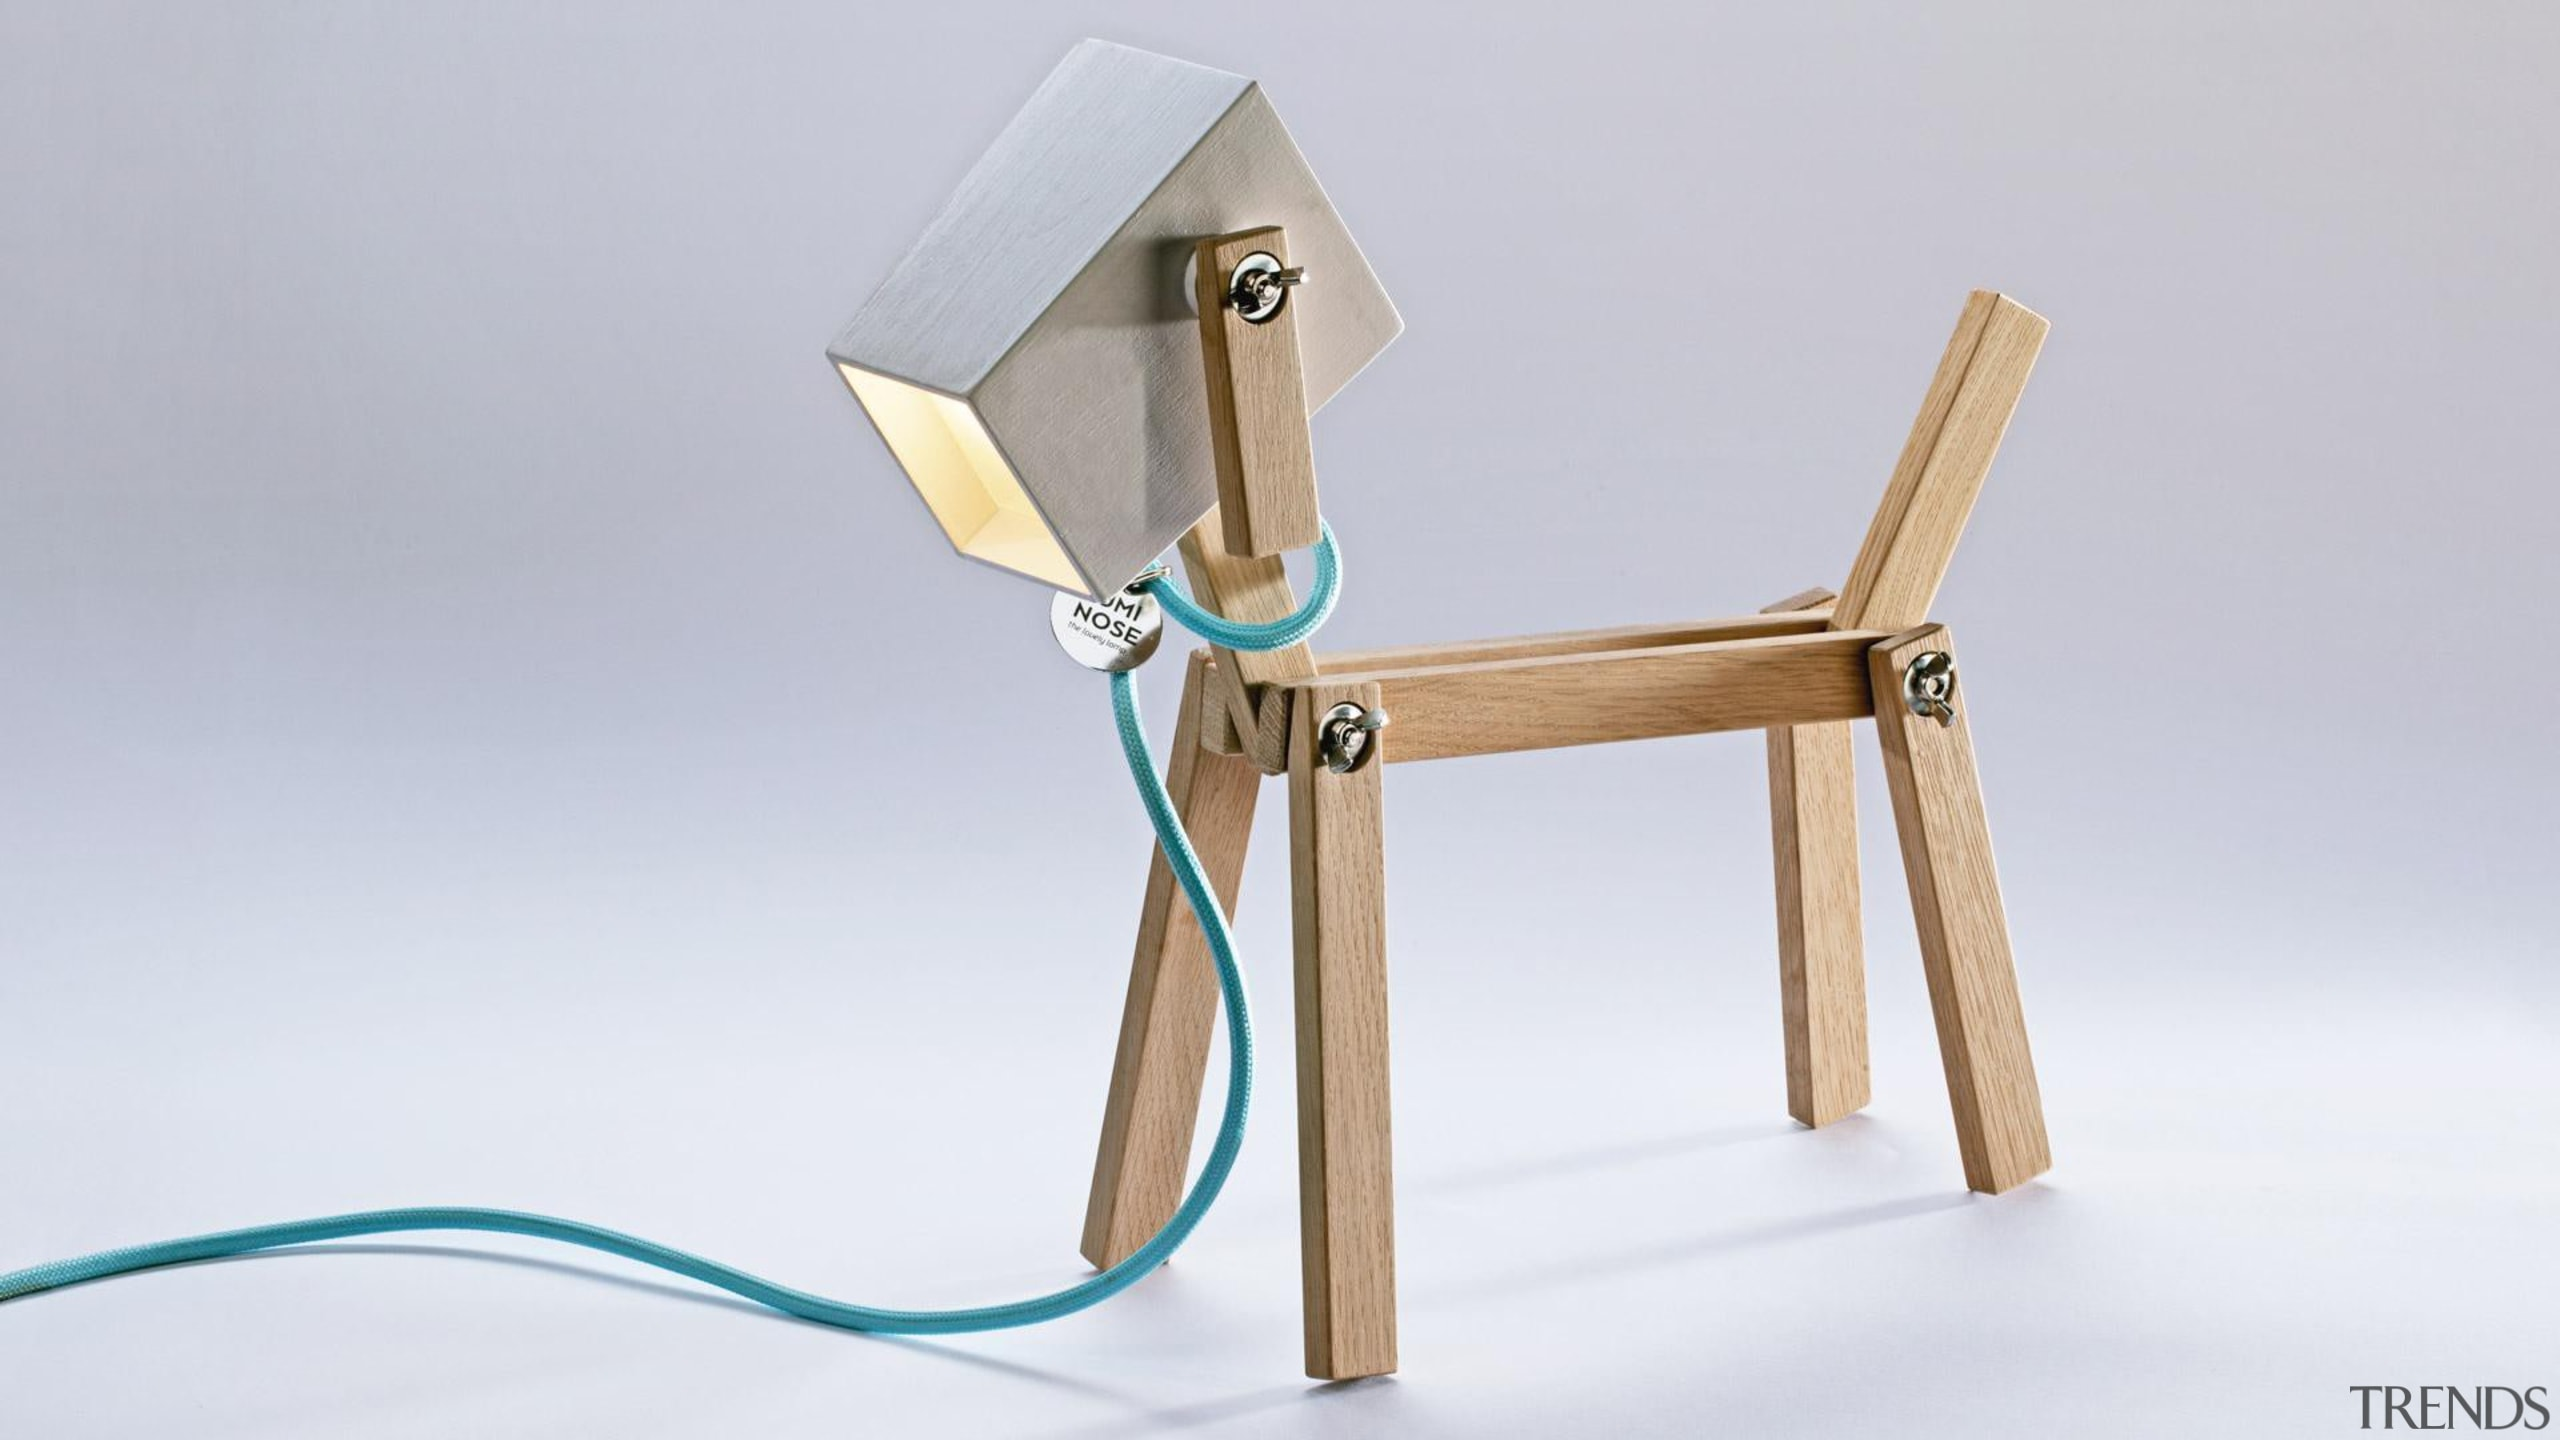 Luminose is a new project by Budapest-based designers chair, furniture, lighting, product, product design, table, white